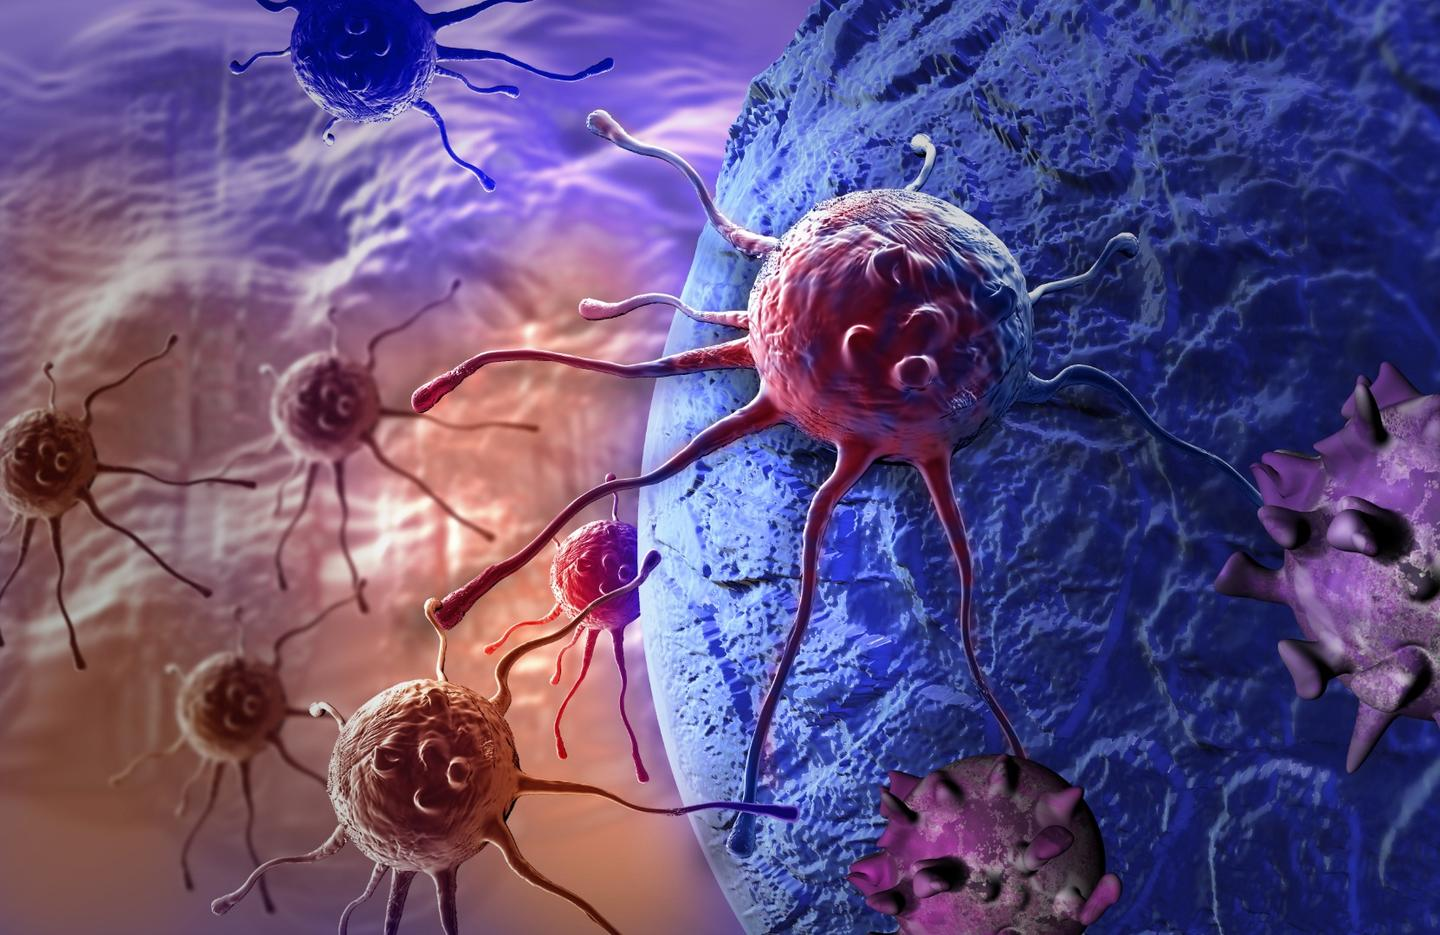 Scientists have come up with a new screening method for cervical cancer that has proven100 percent accuratein testing